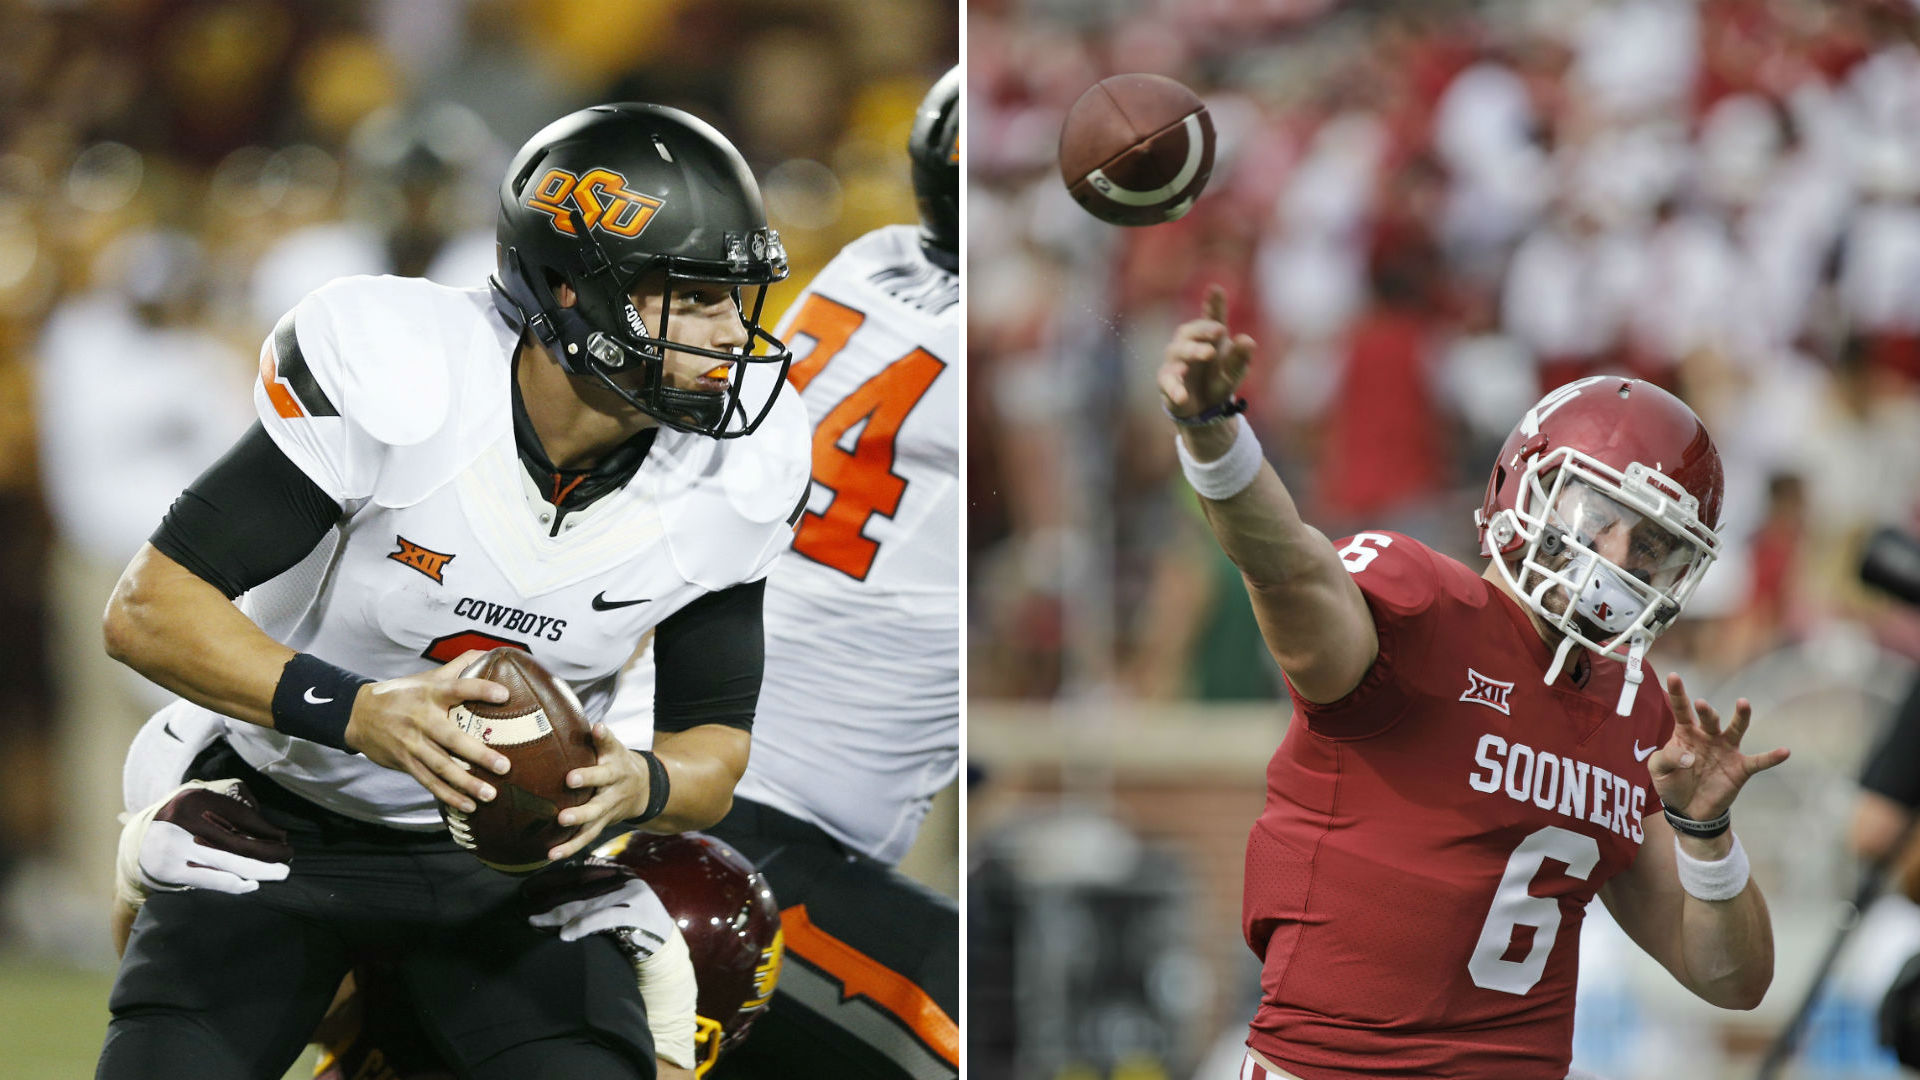 Week 10 college football scores, highlights from Saturday's games